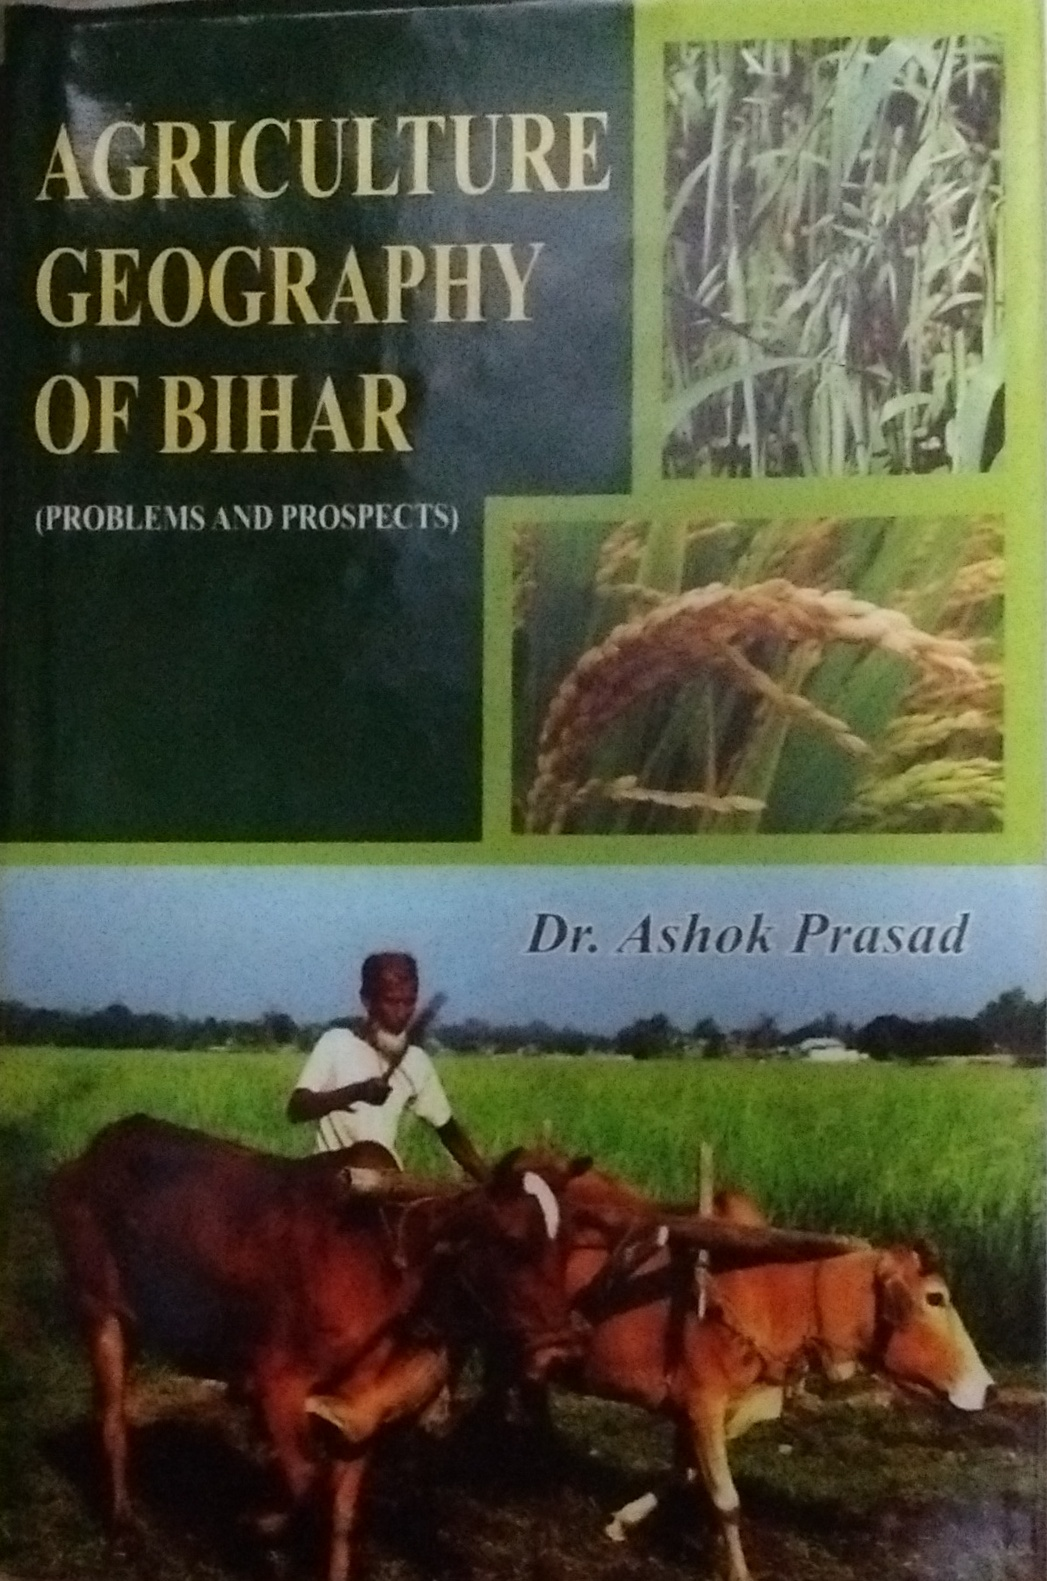 Agriculture Geography of Bihar (Problems and Prosp…